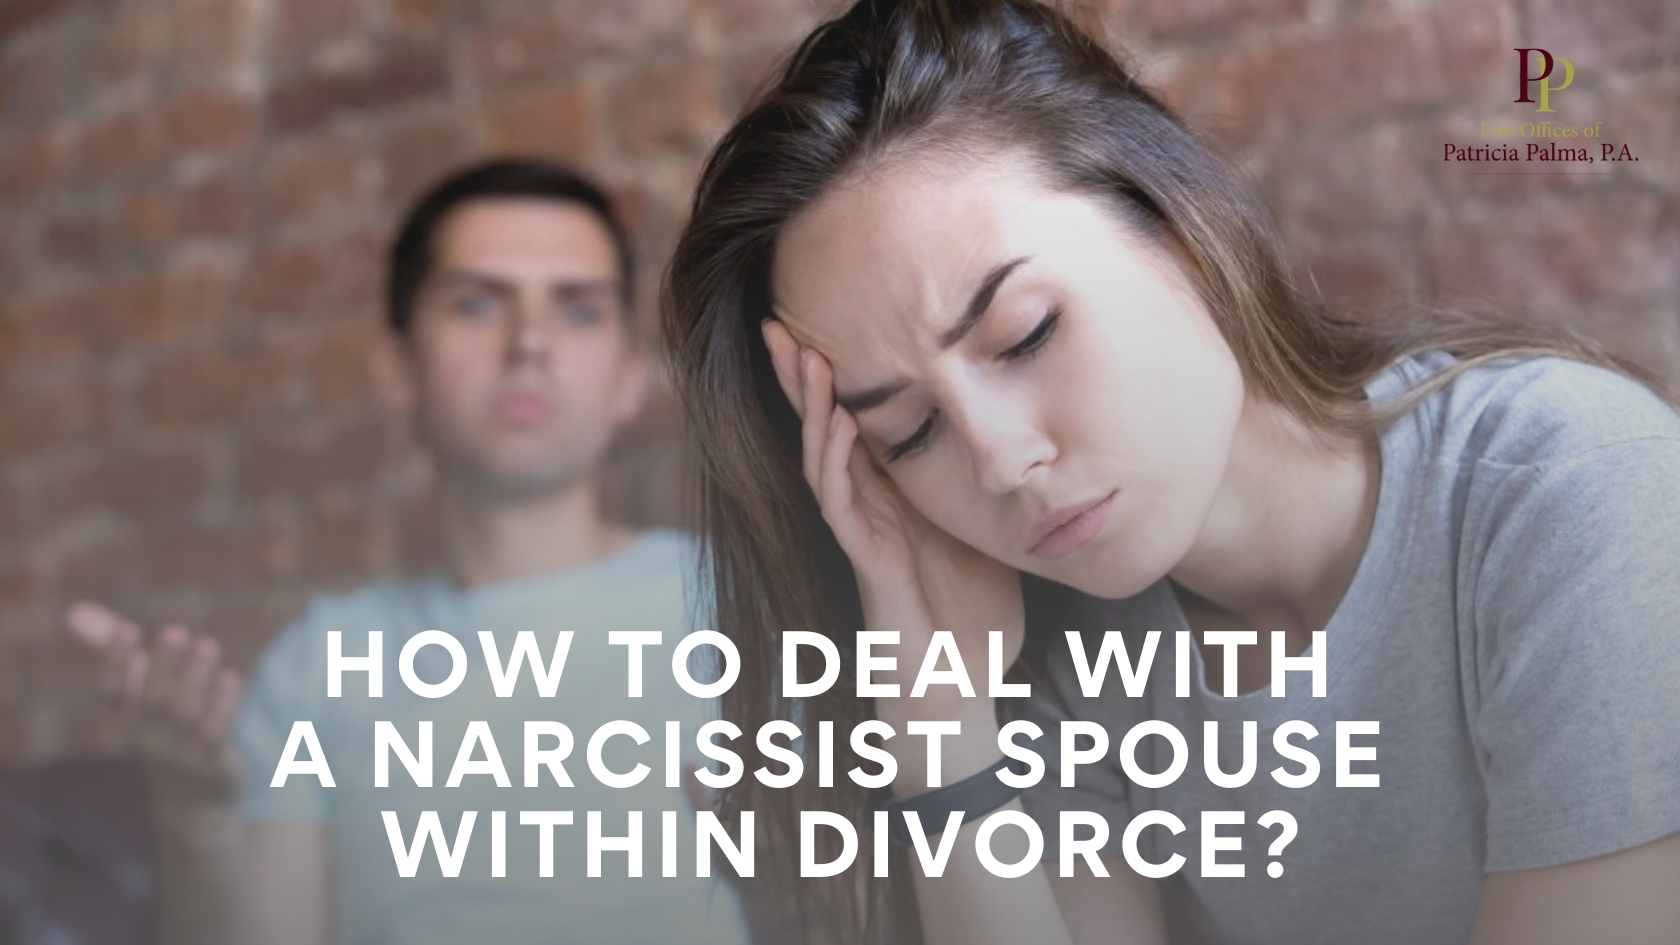 How To Deal With A Narcissist Spouse Within Divorce?